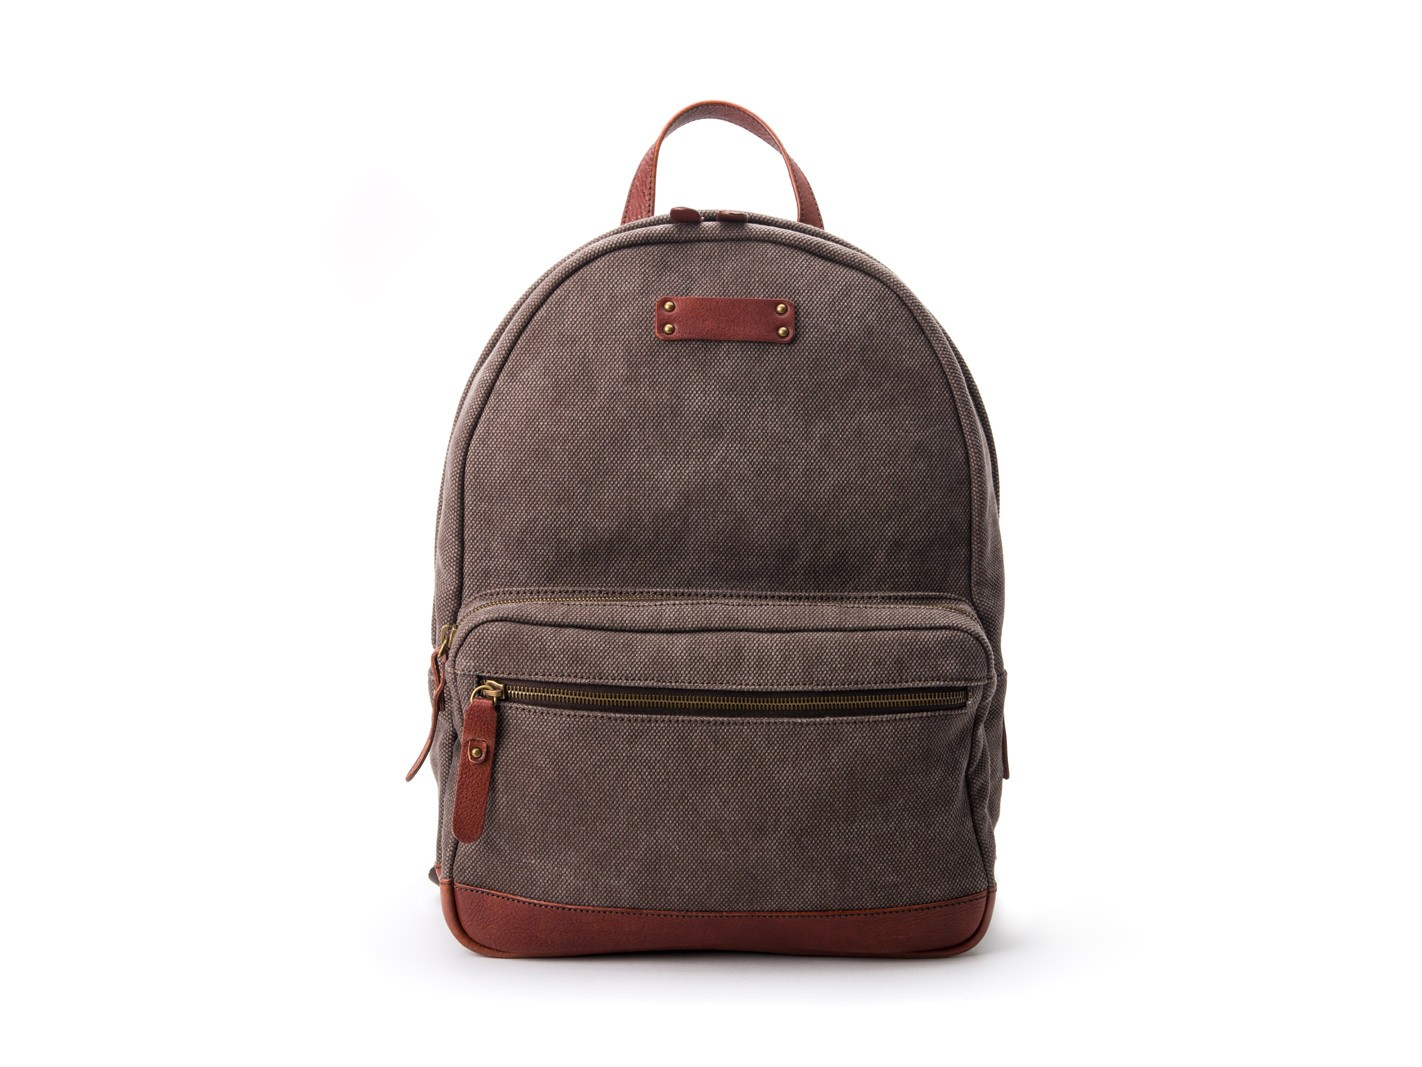 Fabric & Washed Leather Backpack